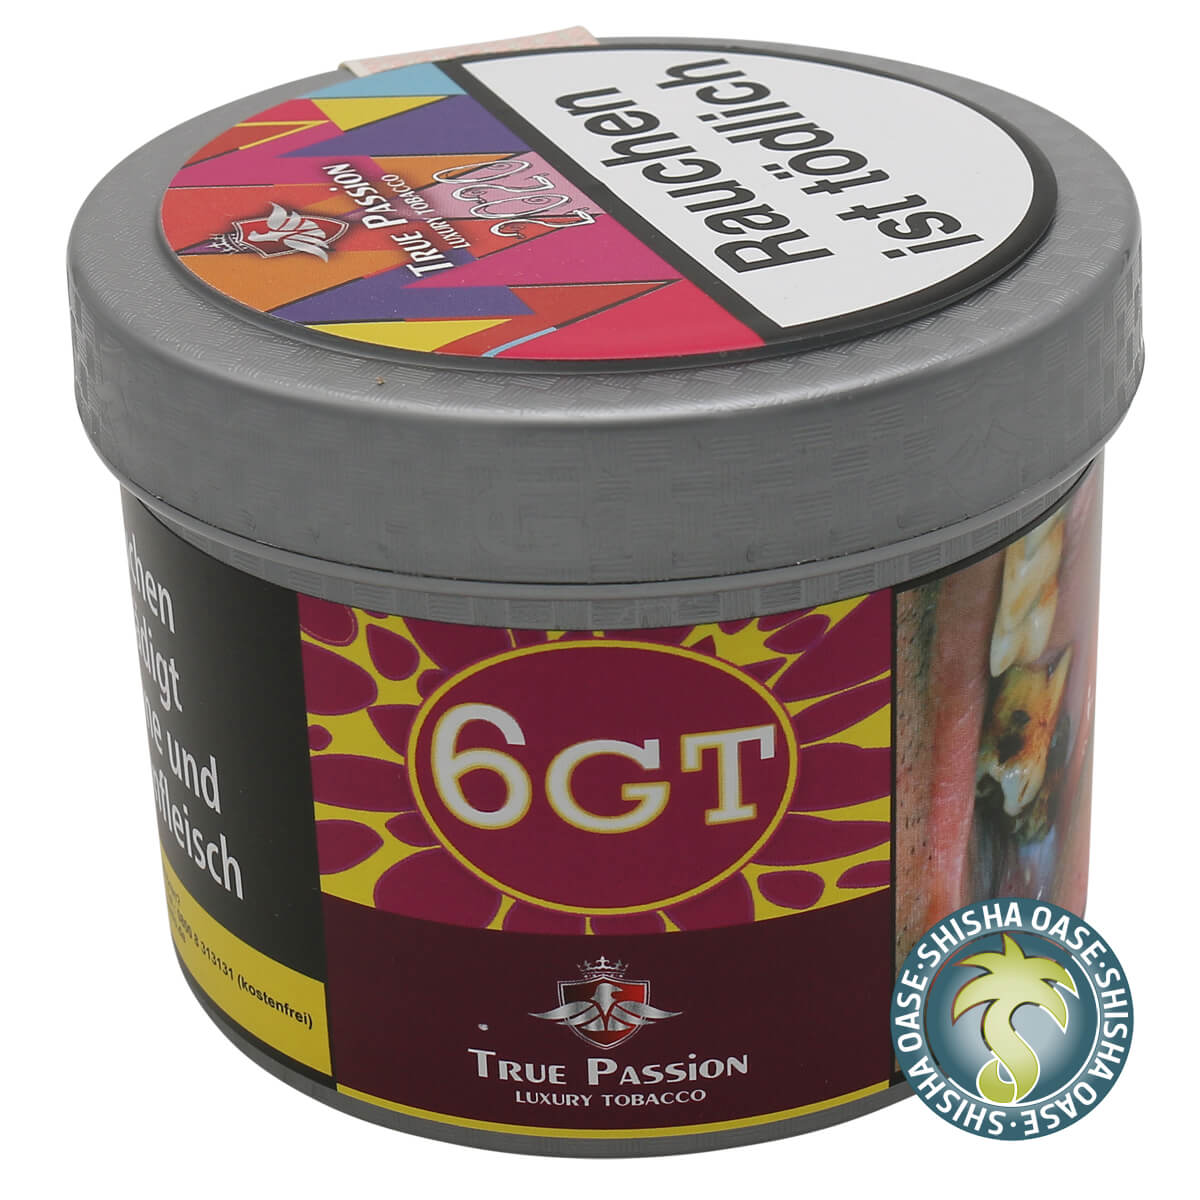 True Passion Tabak 200g Dose | 6GT